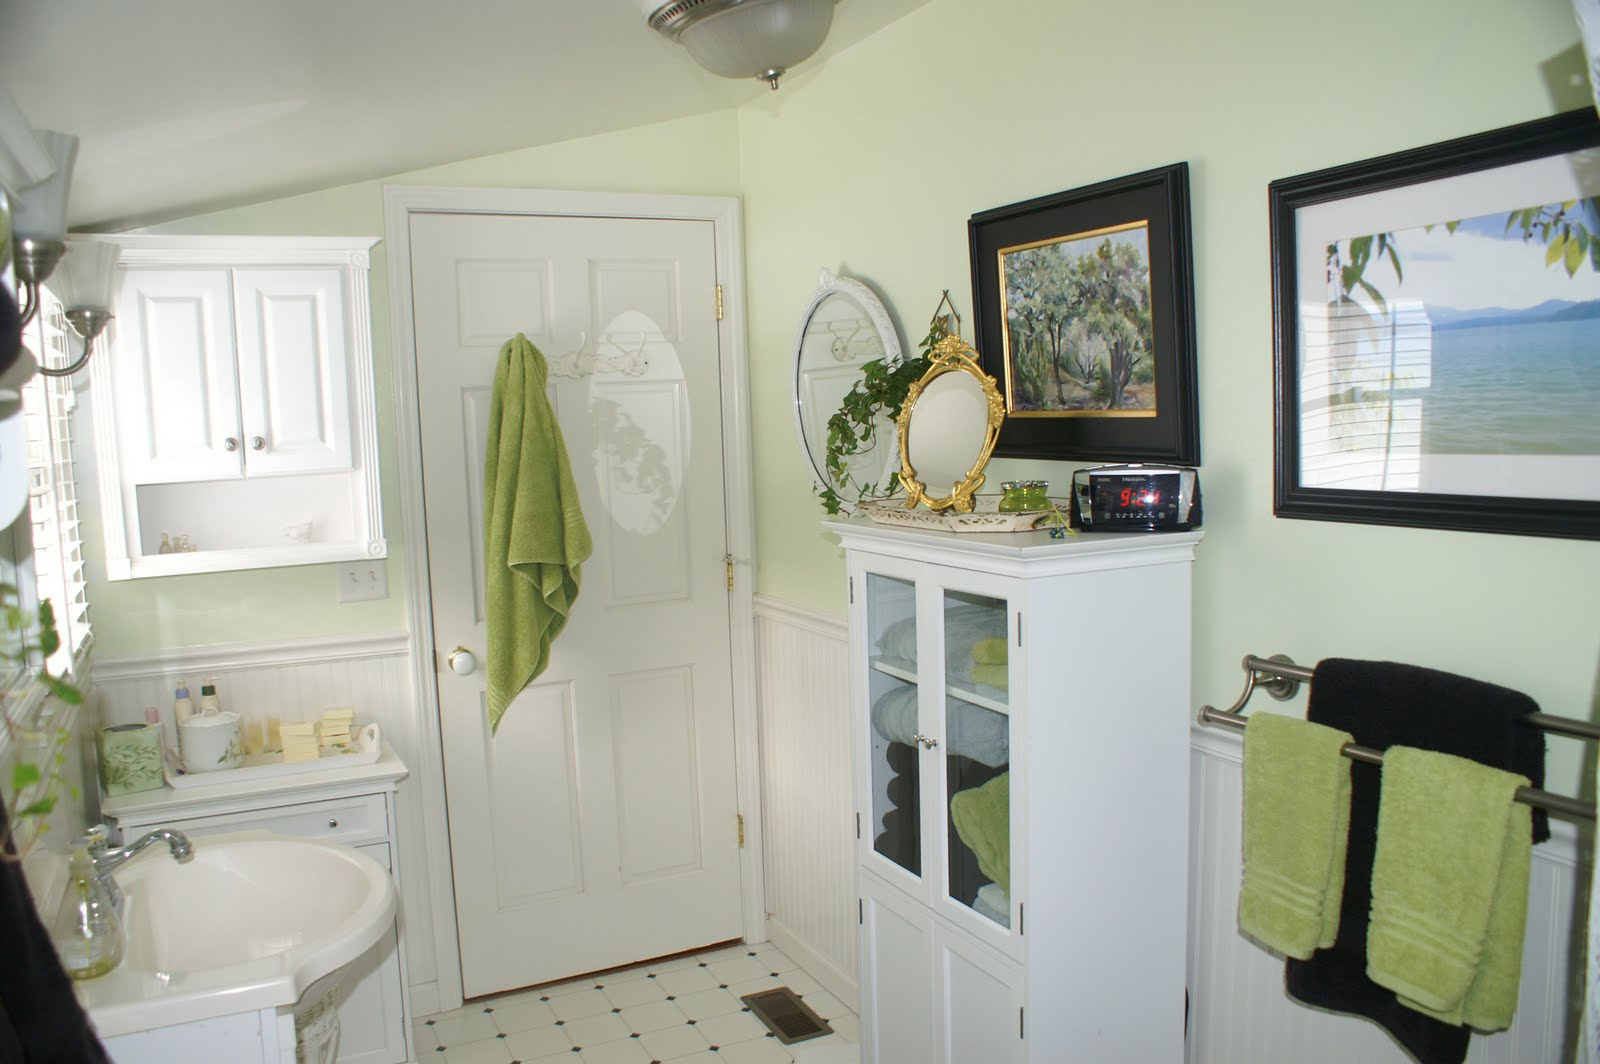 White Clean and Spacious Feeling of Small Bathroom with Plenty Furniture